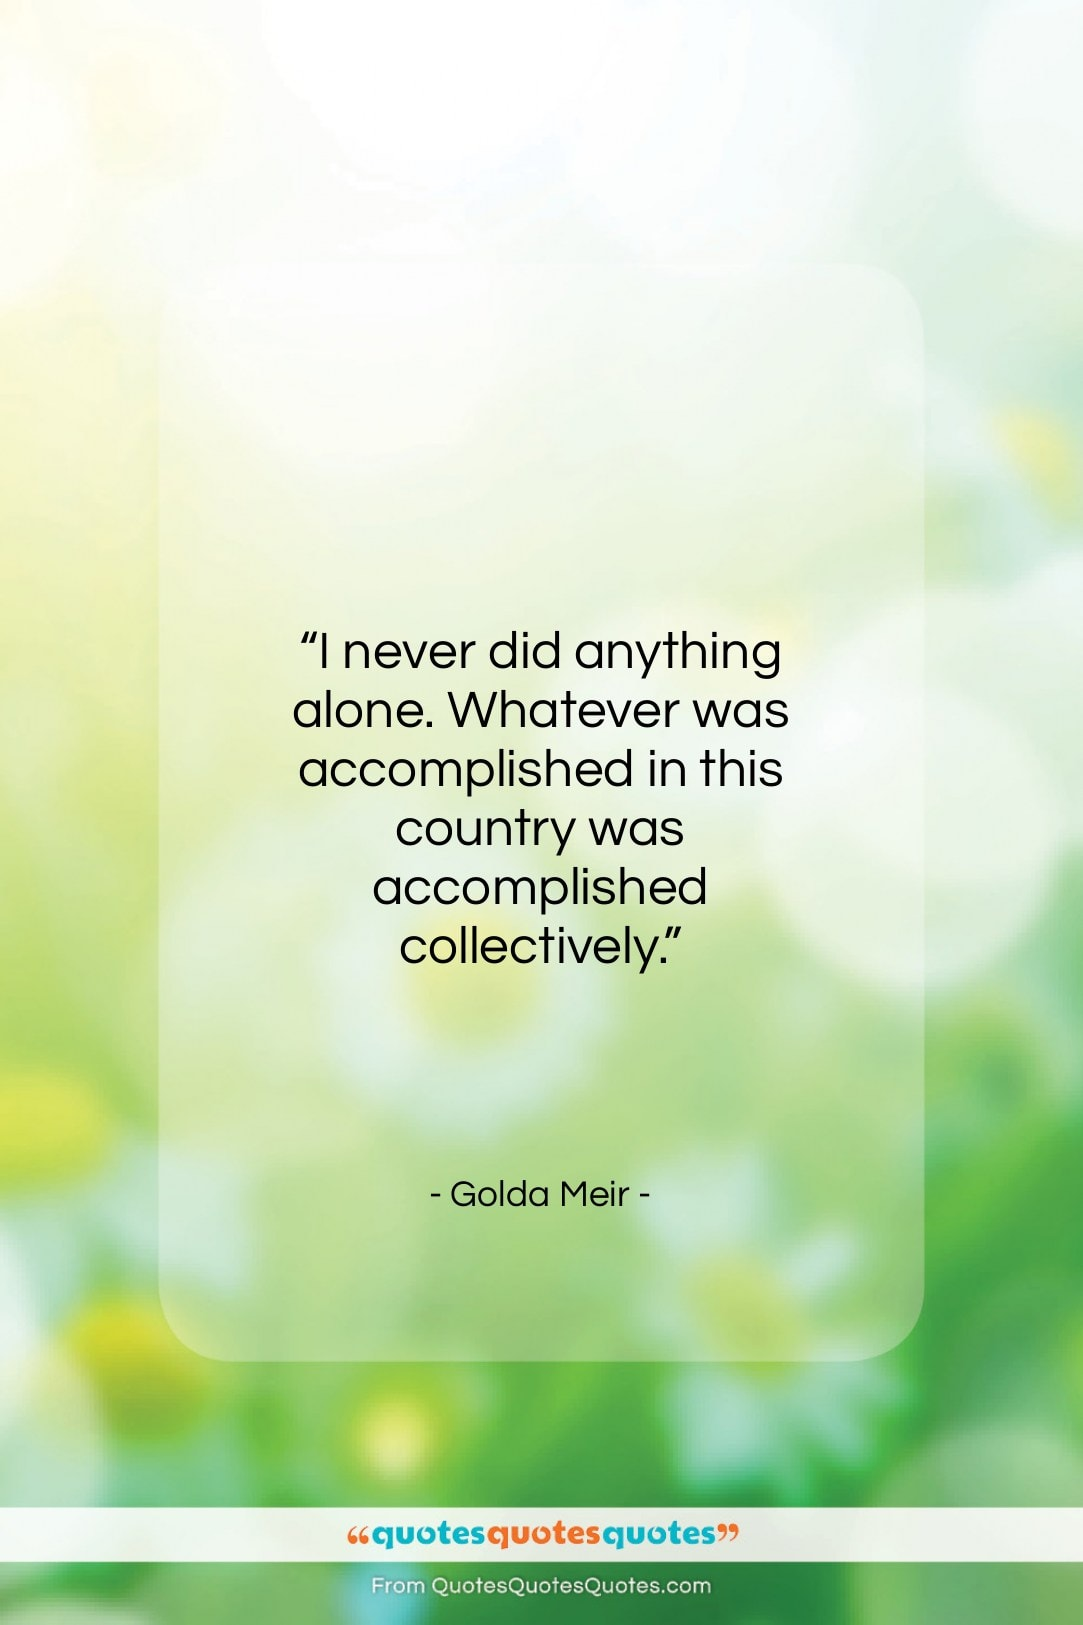 """Golda Meir quote: """"I never did anything alone. Whatever was…""""- at QuotesQuotesQuotes.com"""